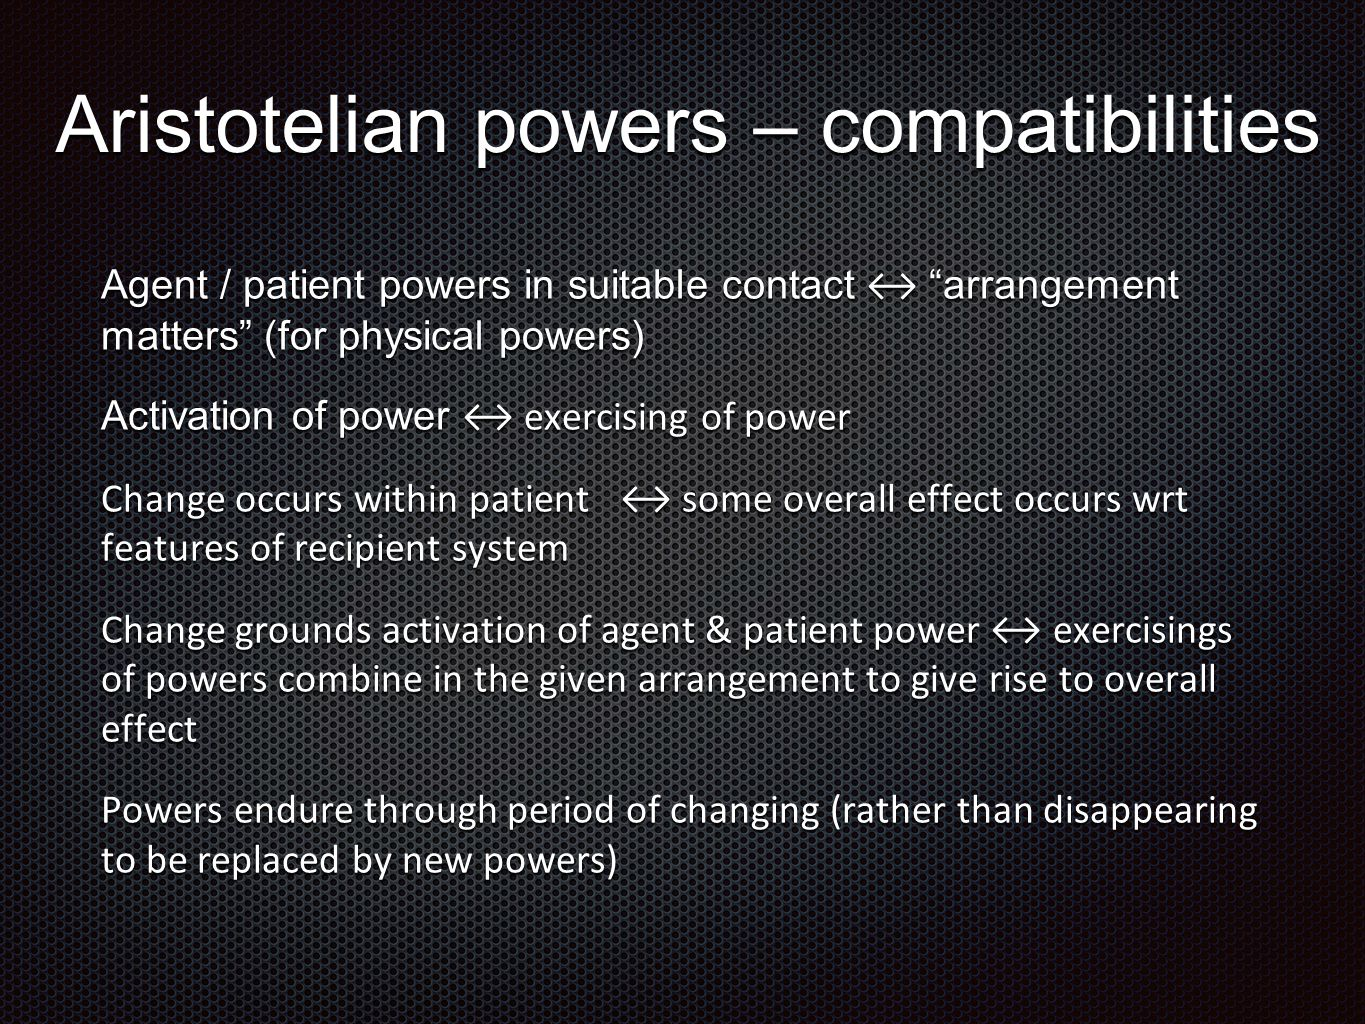 Aristotelian powers – compatibilities Agent / patient powers in suitable contact ↔ arrangement matters (for physical powers) Activation of power ↔ exercising of power Change occurs within patient ↔ some overall effect occurs wrt features of recipient system Change grounds activation of agent & patient power ↔ exercisings of powers combine in the given arrangement to give rise to overall effect Powers endure through period of changing (rather than disappearing to be replaced by new powers)